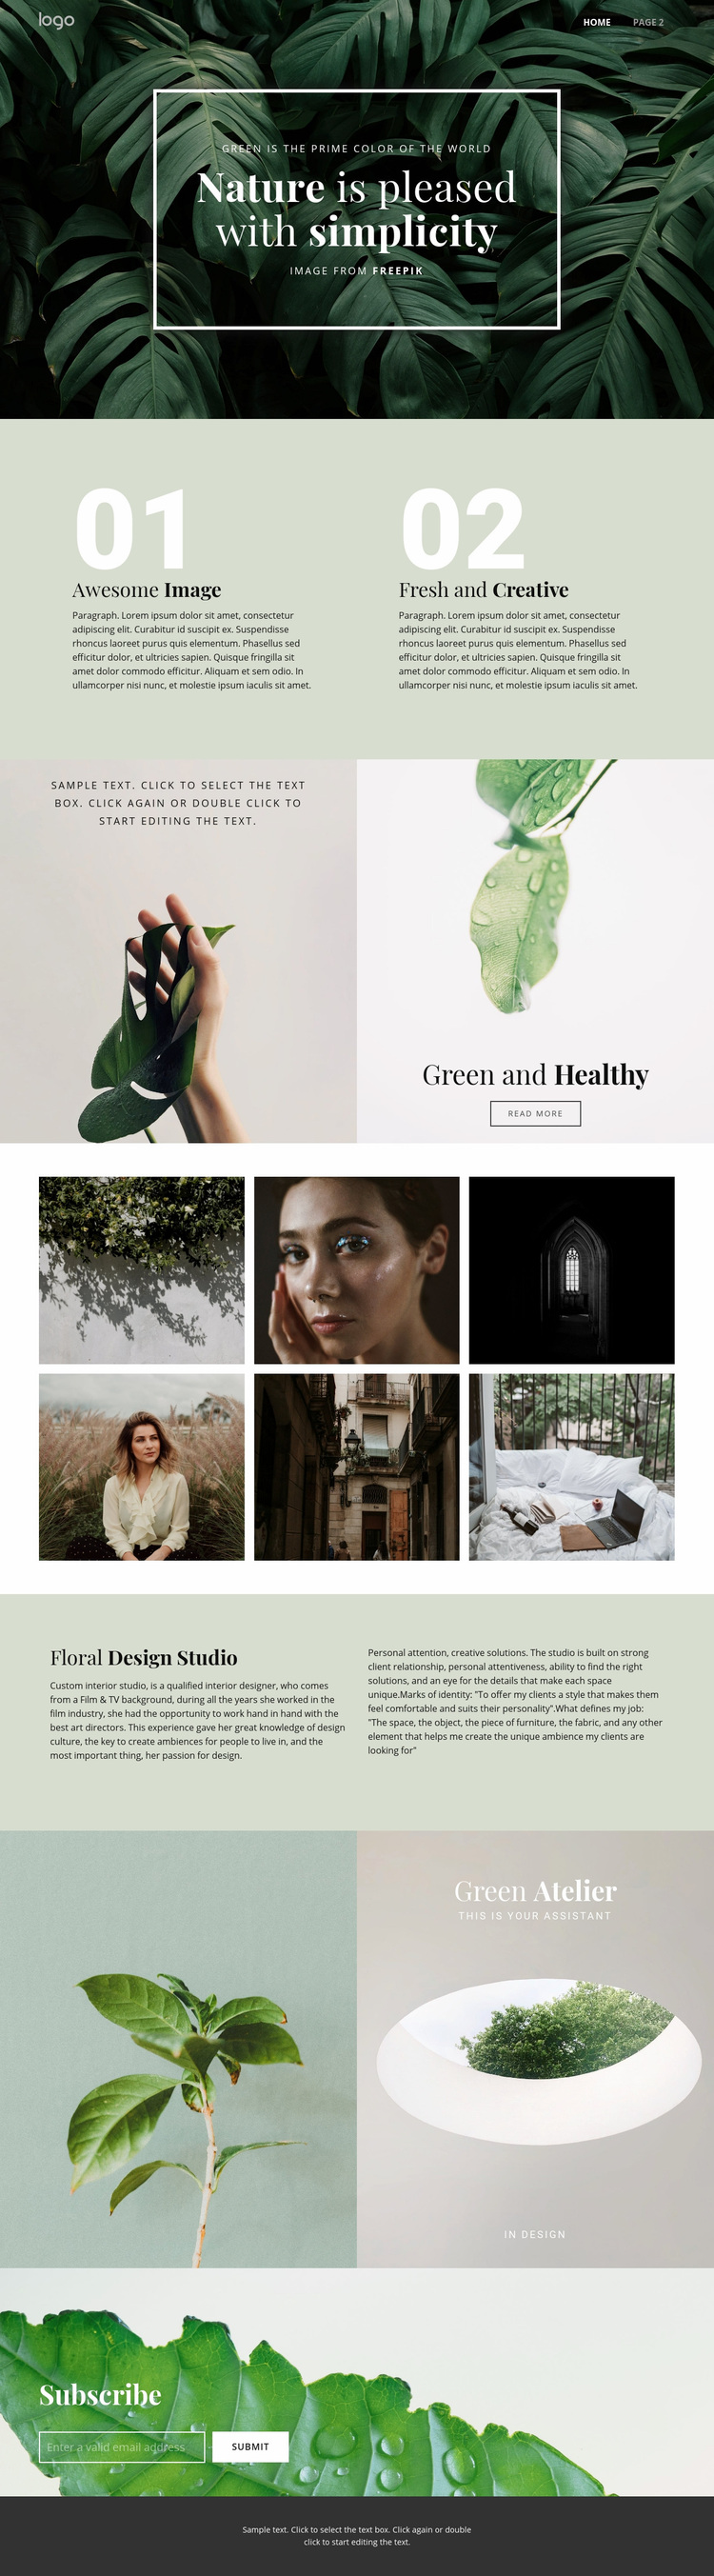 Beauty simplicity of nature Web Page Designer